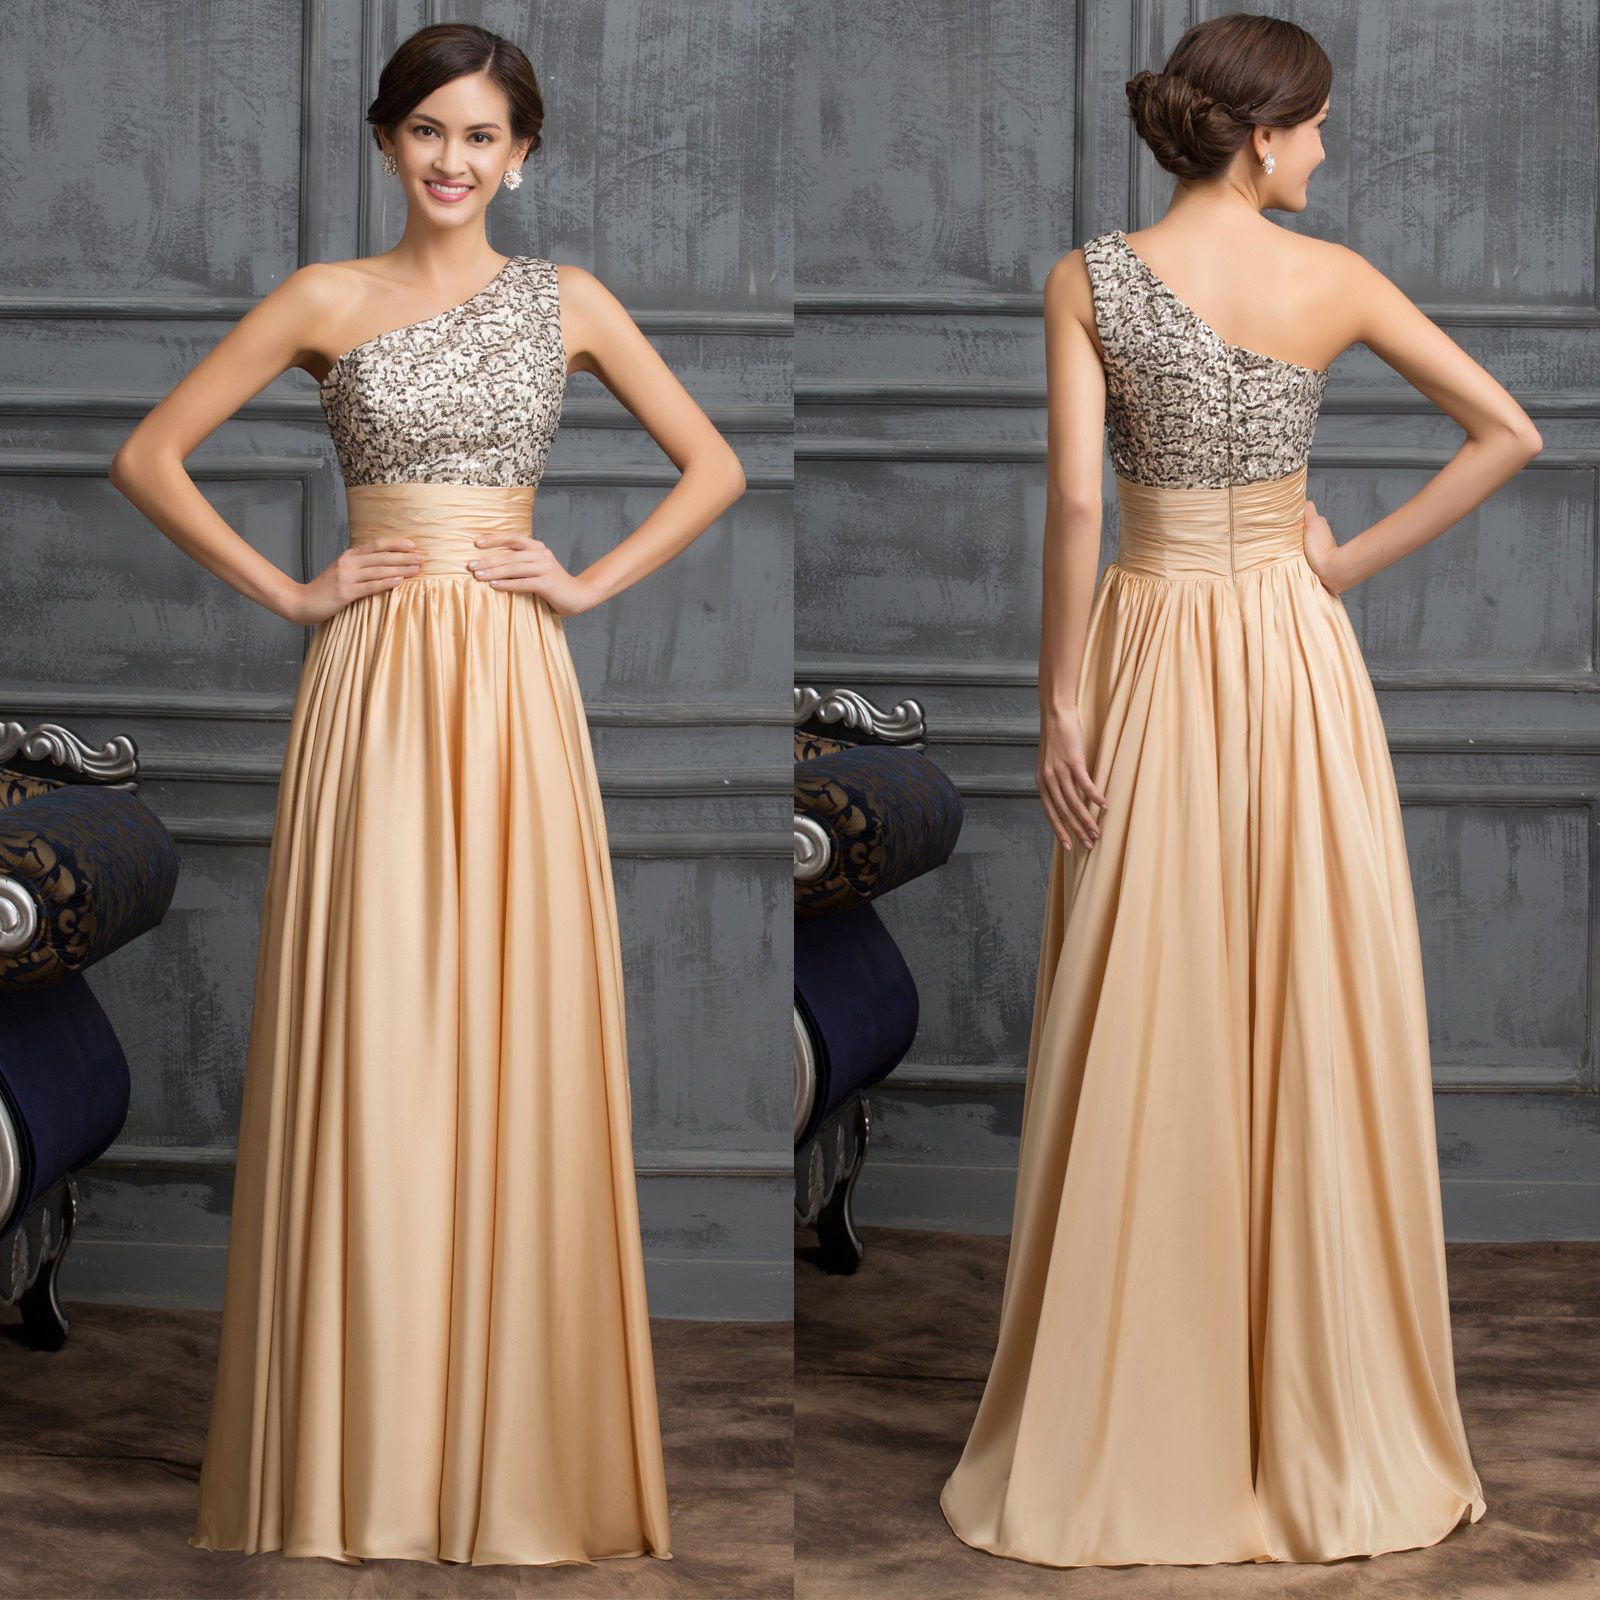 Long wedding party bridesmaid dress evening formal cocktail pageant